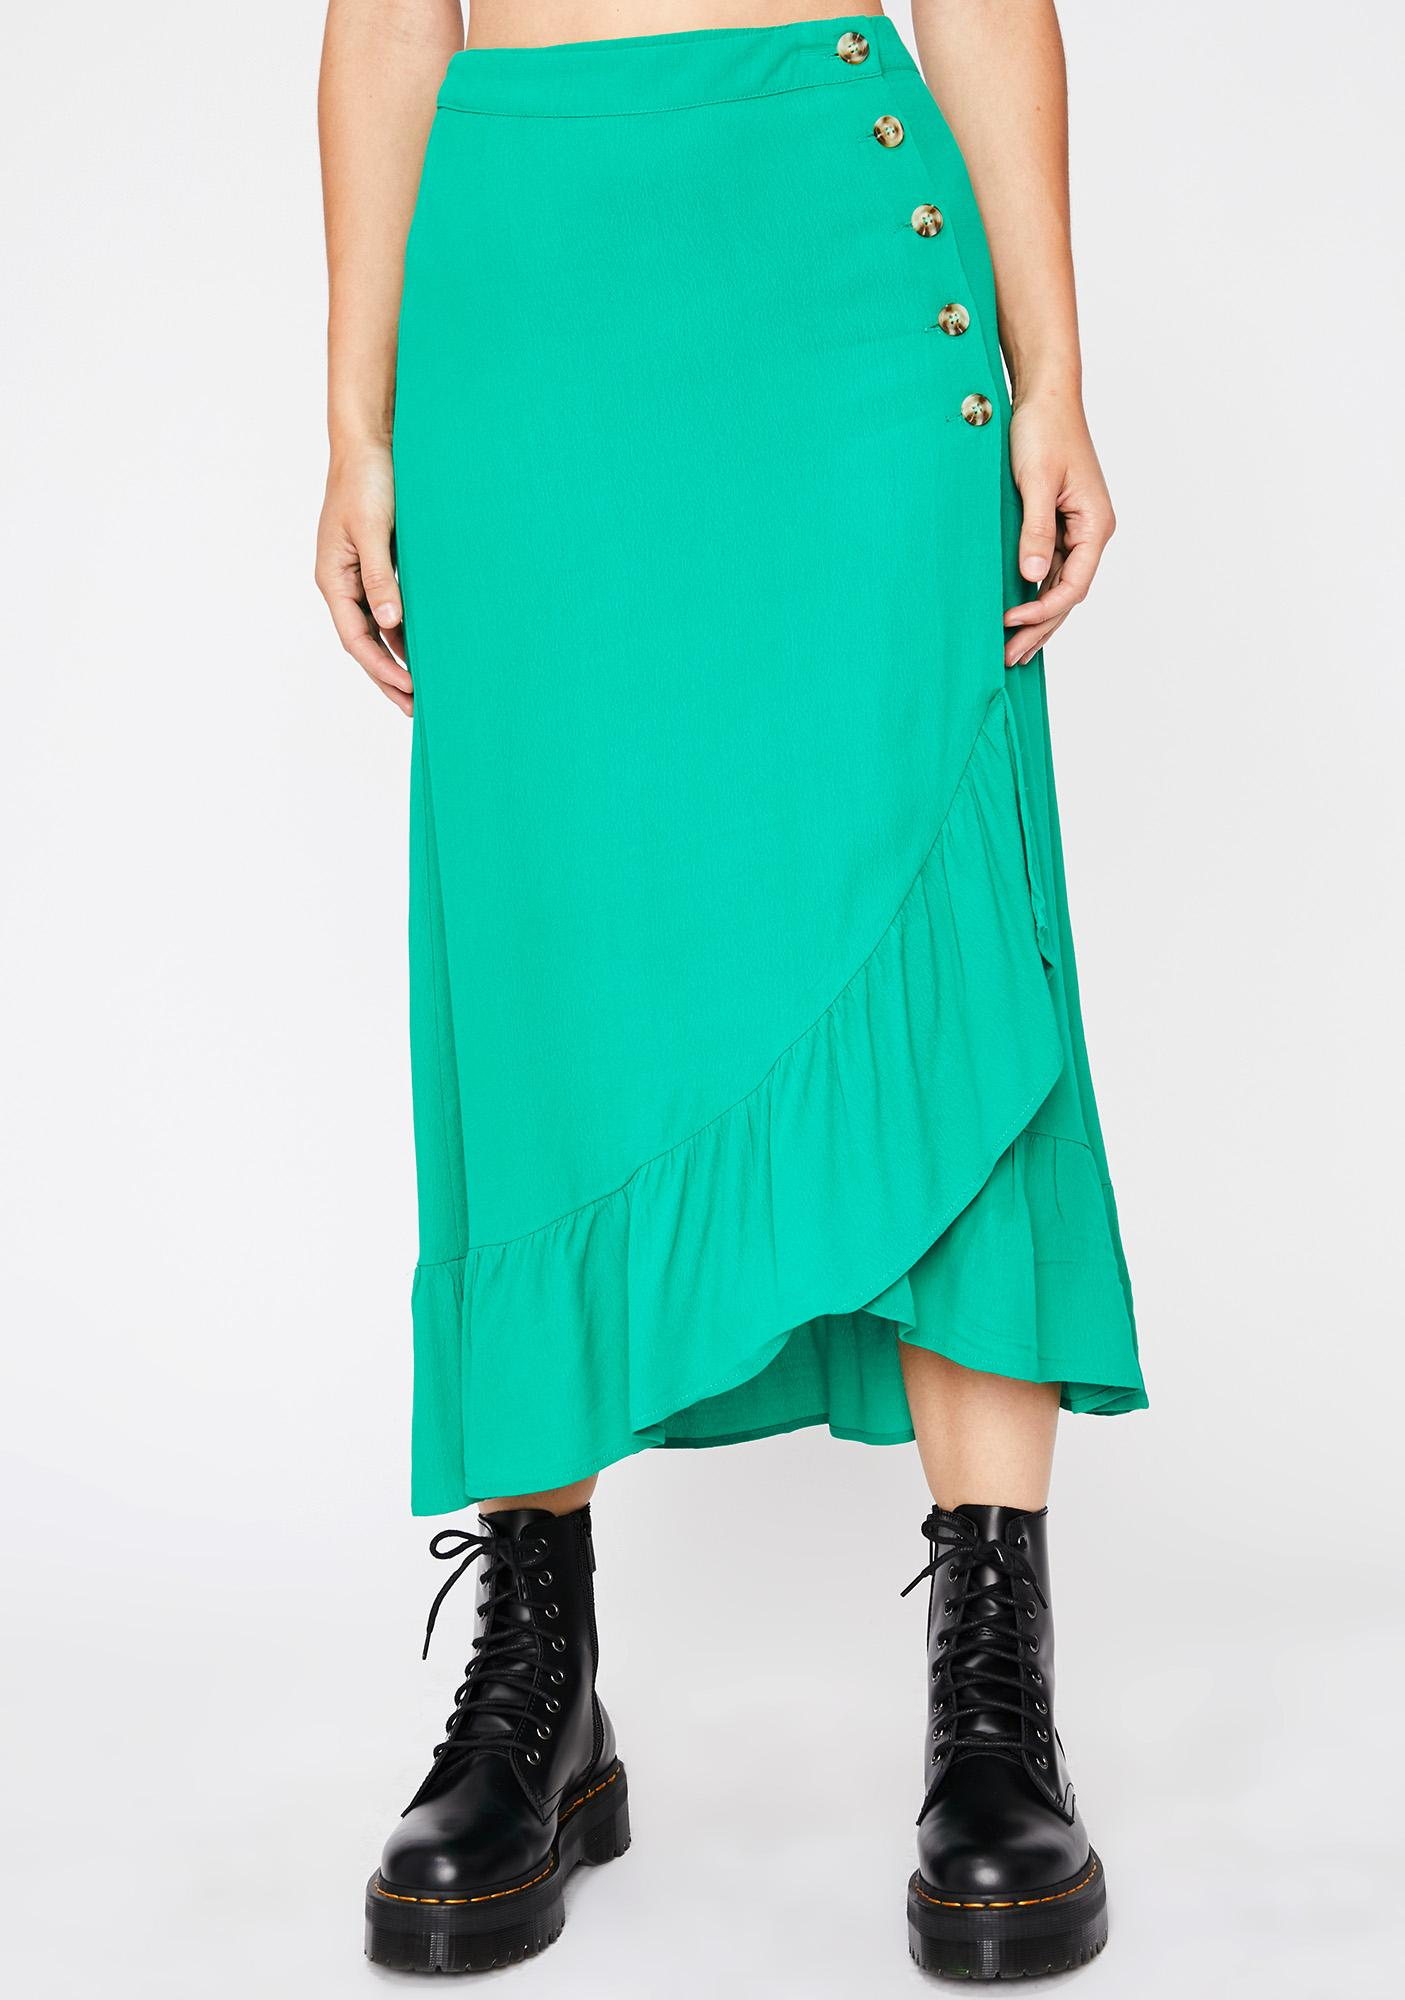 Give Me One Reason Midi Skirt